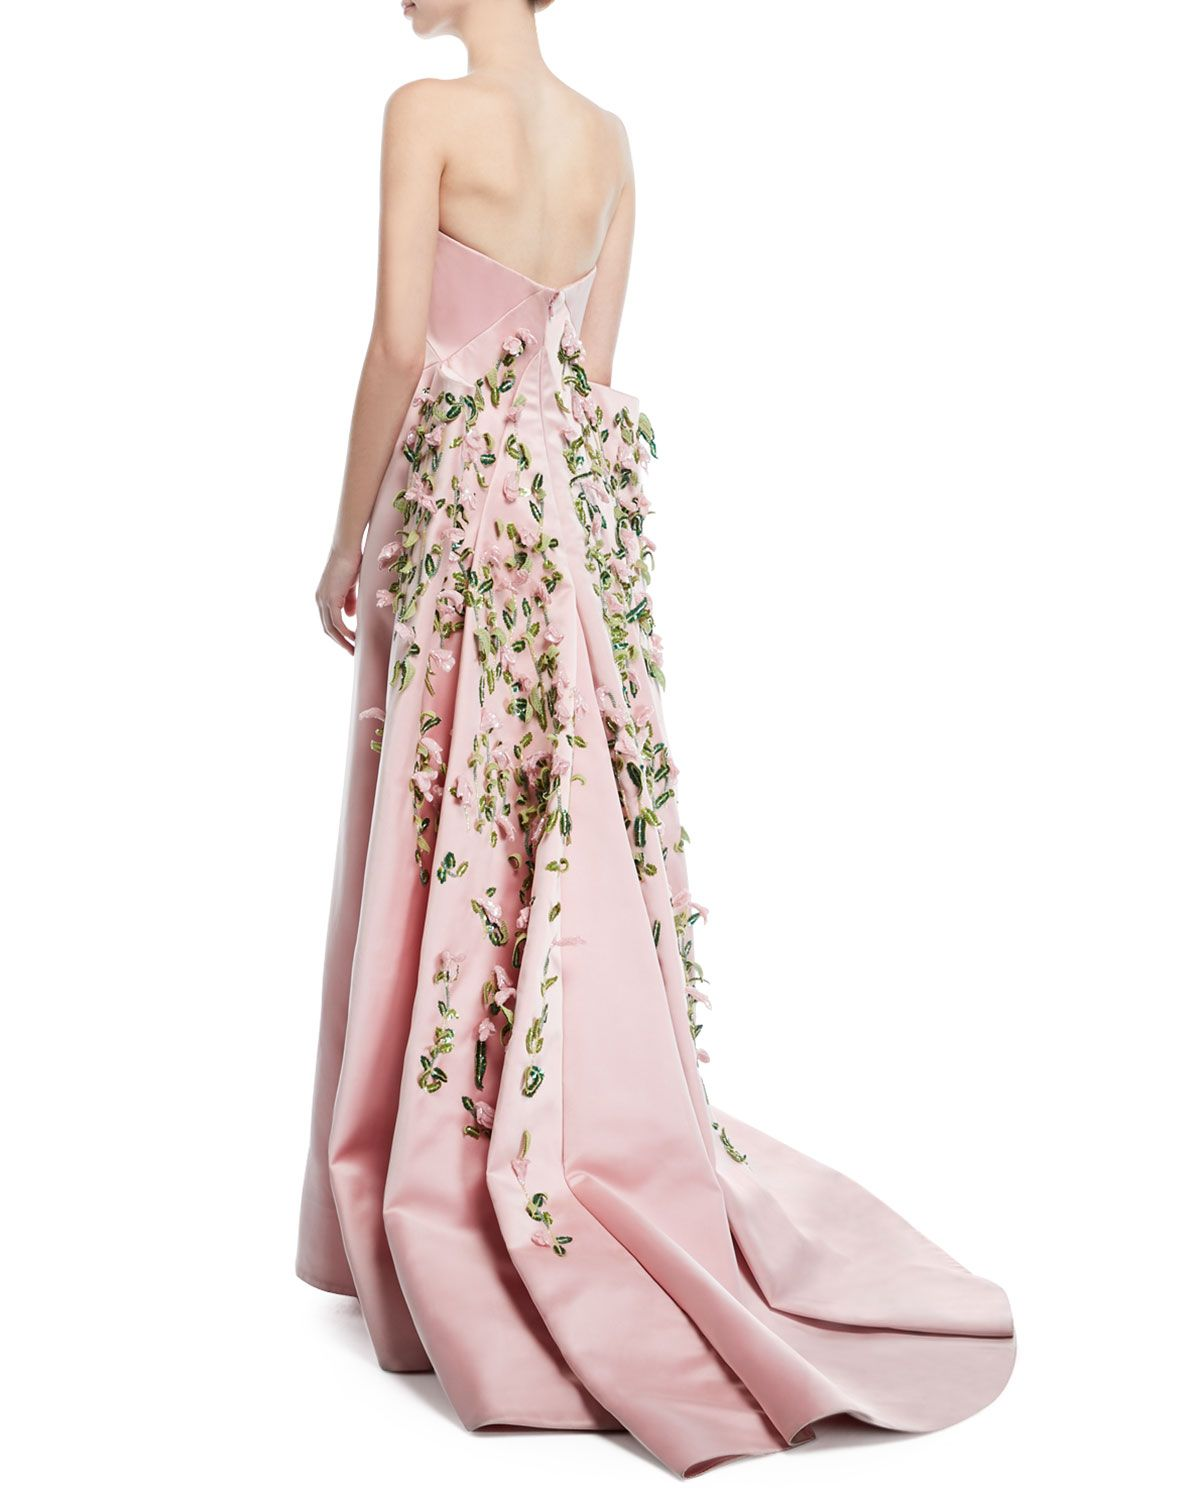 Zac Posen Strapless Duchess Satin Evening Gown With Floral Vine Embroidery Satin Evening Gown Evening Gowns Strapless Floral Dress